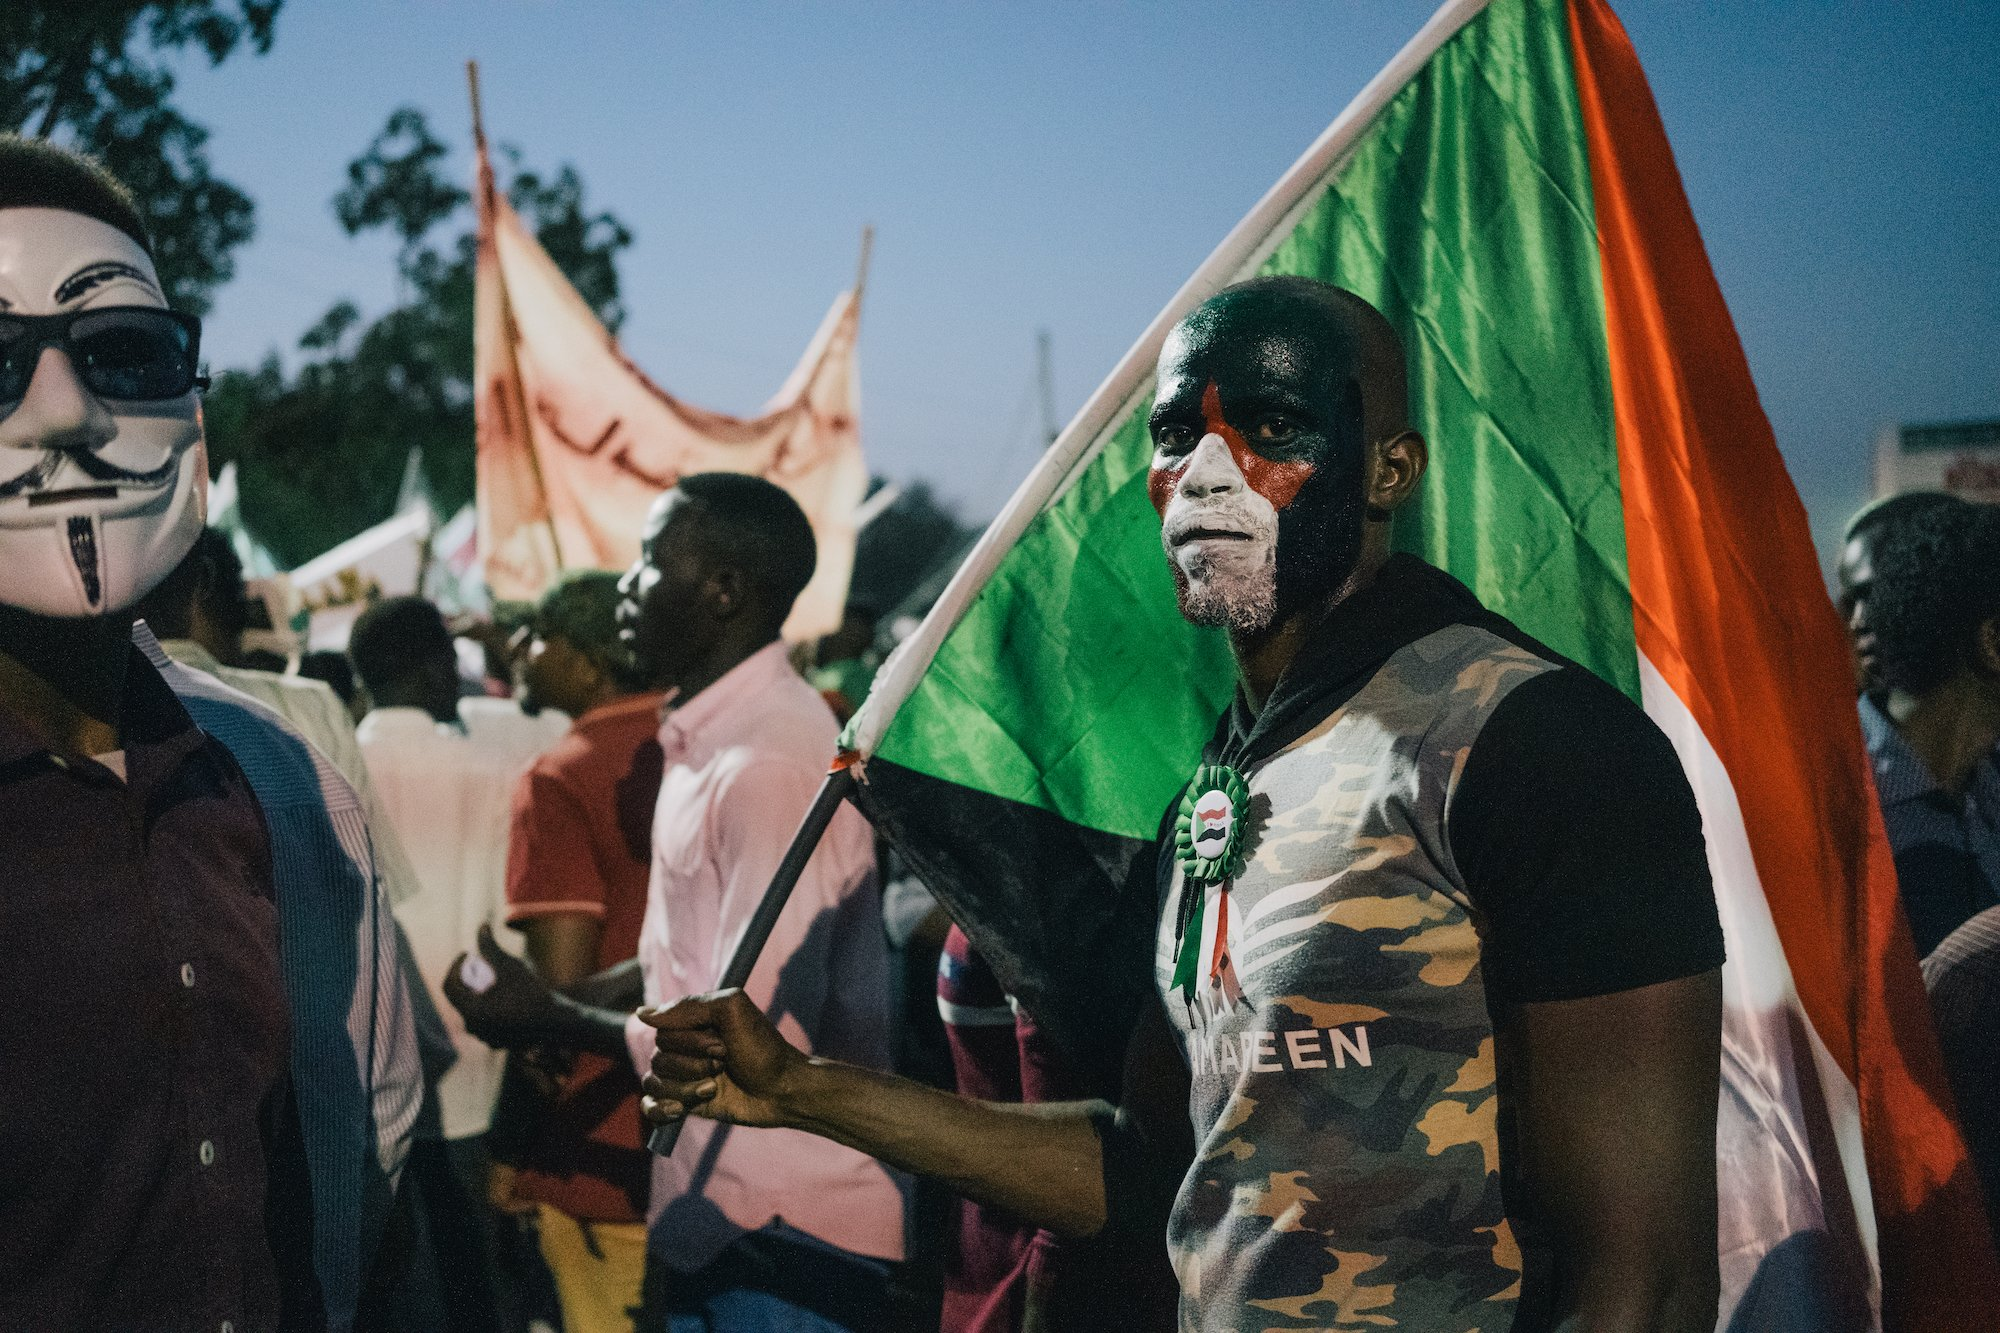 After sunset, Sudan's protesters take to the streets